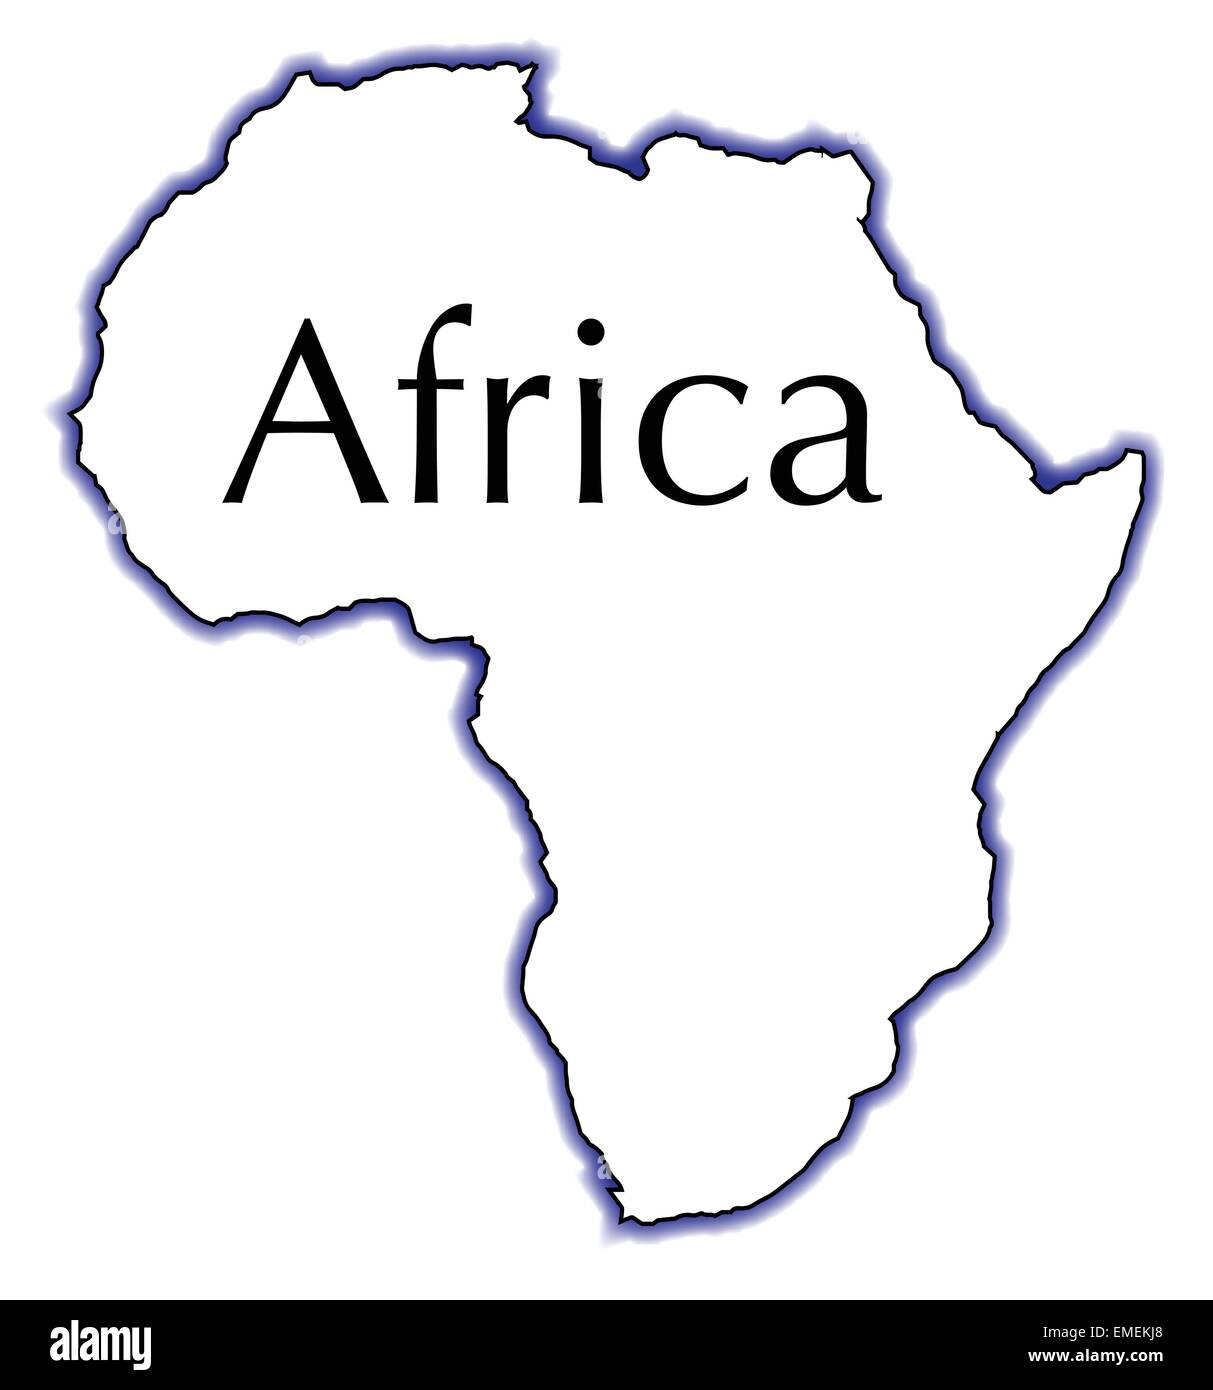 Outline Map Africa Over White Stock Photos & Outline Map Africa Over ...